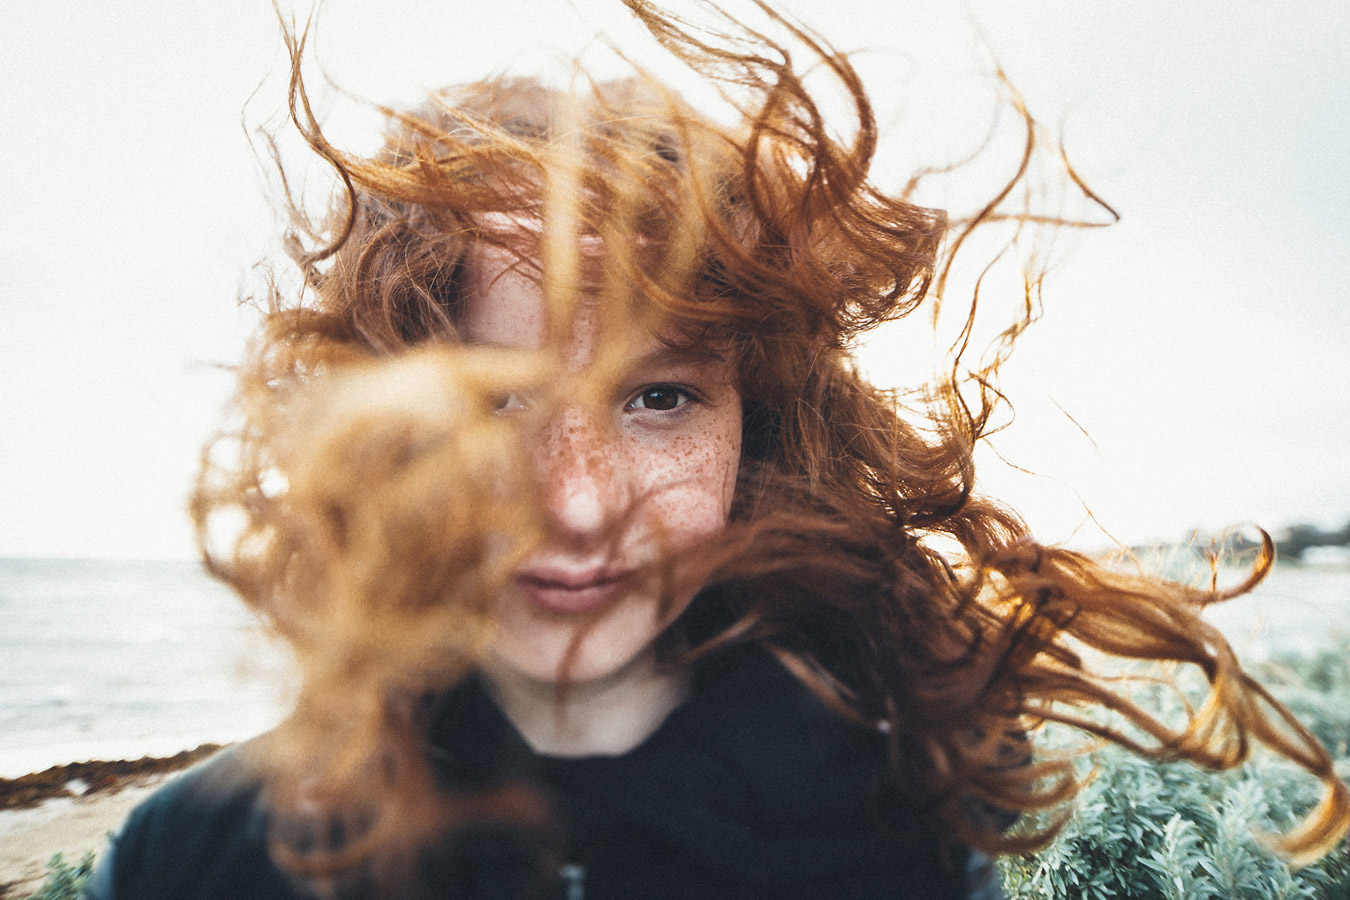 """Freckles + Wind"", © Anna Taylor, Melbourne, VIC, Australia, First Place Professional : Portraits, Rangefinder Lifestyle 2017 Winner"